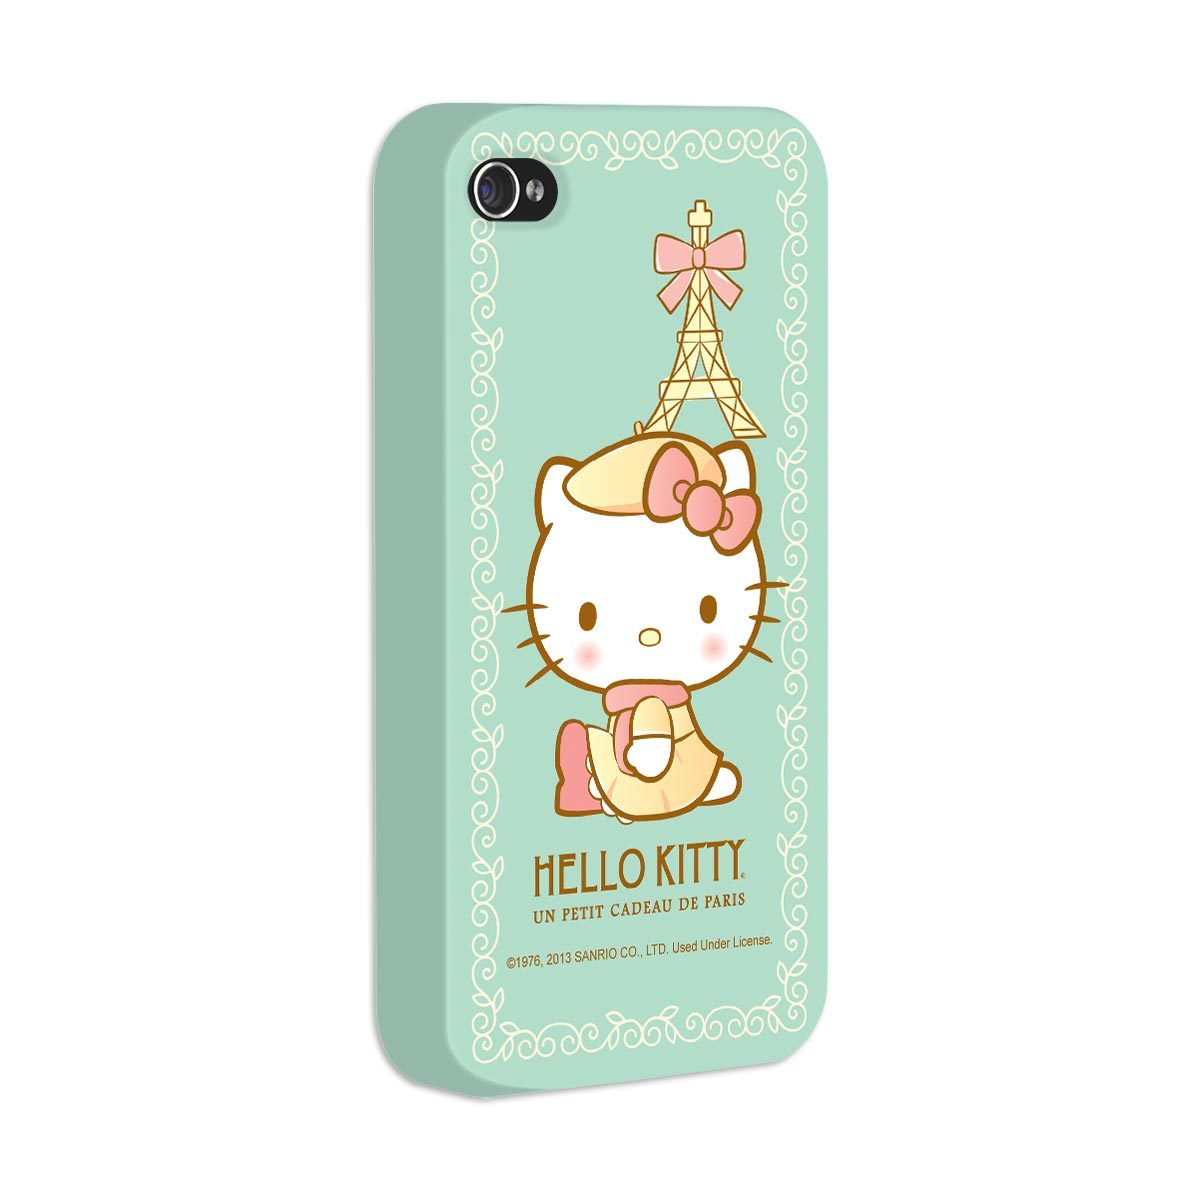 Capa de iPhone 4/4S Hello Kitty Un Petit Cadeau